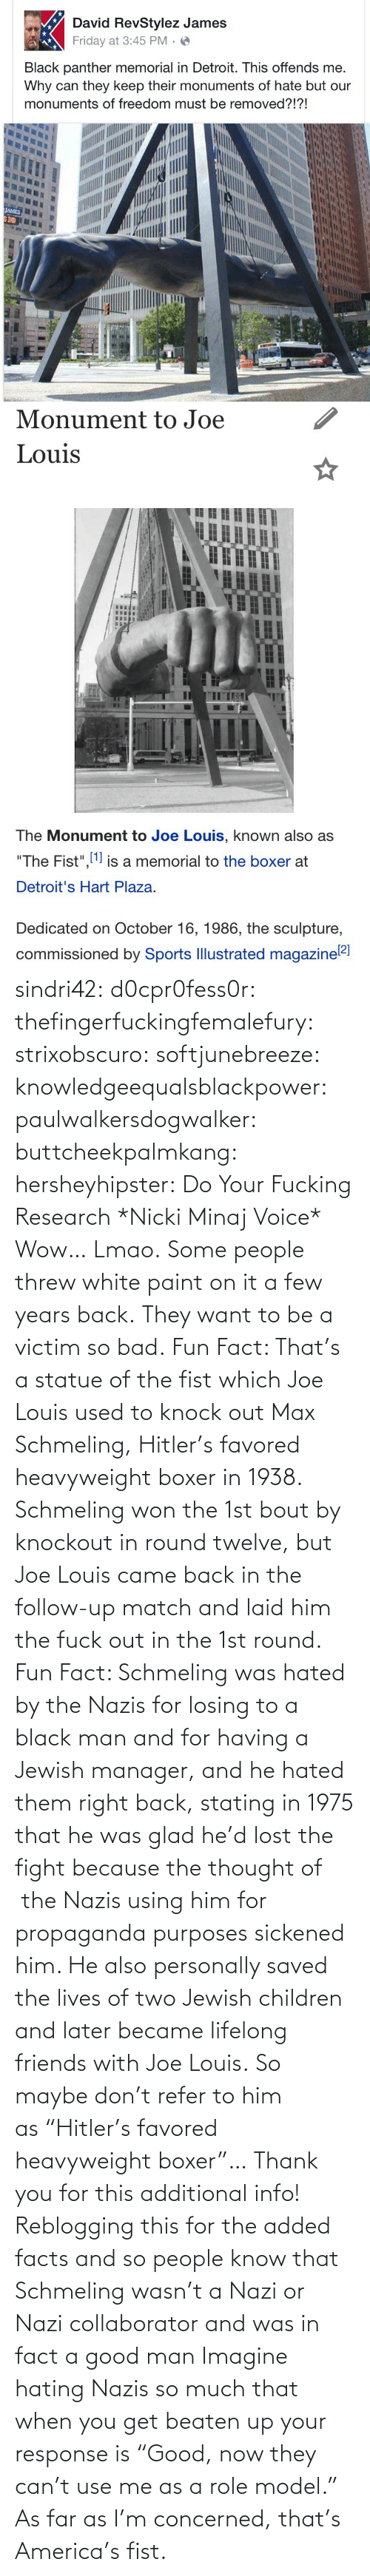 "imagine: sindri42:  d0cpr0fess0r:  thefingerfuckingfemalefury:  strixobscuro:  softjunebreeze:  knowledgeequalsblackpower:  paulwalkersdogwalker:   buttcheekpalmkang:   hersheyhipster:  Do Your Fucking Research *Nicki Minaj Voice*    Wow… Lmao.   Some people threw white paint on it a few years back.   They want to be a victim so bad.  Fun Fact: That's a statue of the fist which Joe Louis used to knock out Max Schmeling, Hitler's favored heavyweight boxer in 1938. Schmeling won the 1st bout by knockout in round twelve, but Joe Louis came back in the follow-up match and laid him the fuck out in the 1st round.  Fun Fact: Schmeling was hated by the Nazis for losing to a black man and for having a Jewish manager, and he hated them right back, stating in 1975 that he was glad he'd lost the fight because the thought of  the Nazis using him for propaganda purposes sickened him. He also personally saved the lives of two Jewish children and later became lifelong friends with Joe Louis. So maybe don't refer to him as ""Hitler's favored heavyweight boxer""…  Thank you for this additional info! Reblogging this for the added facts and so people know that Schmeling wasn't a Nazi or Nazi collaborator and was in fact a good man   Imagine hating Nazis so much that when you get beaten up your response is ""Good, now they can't use me as a role model.""  As far as I'm concerned, that's America's fist."